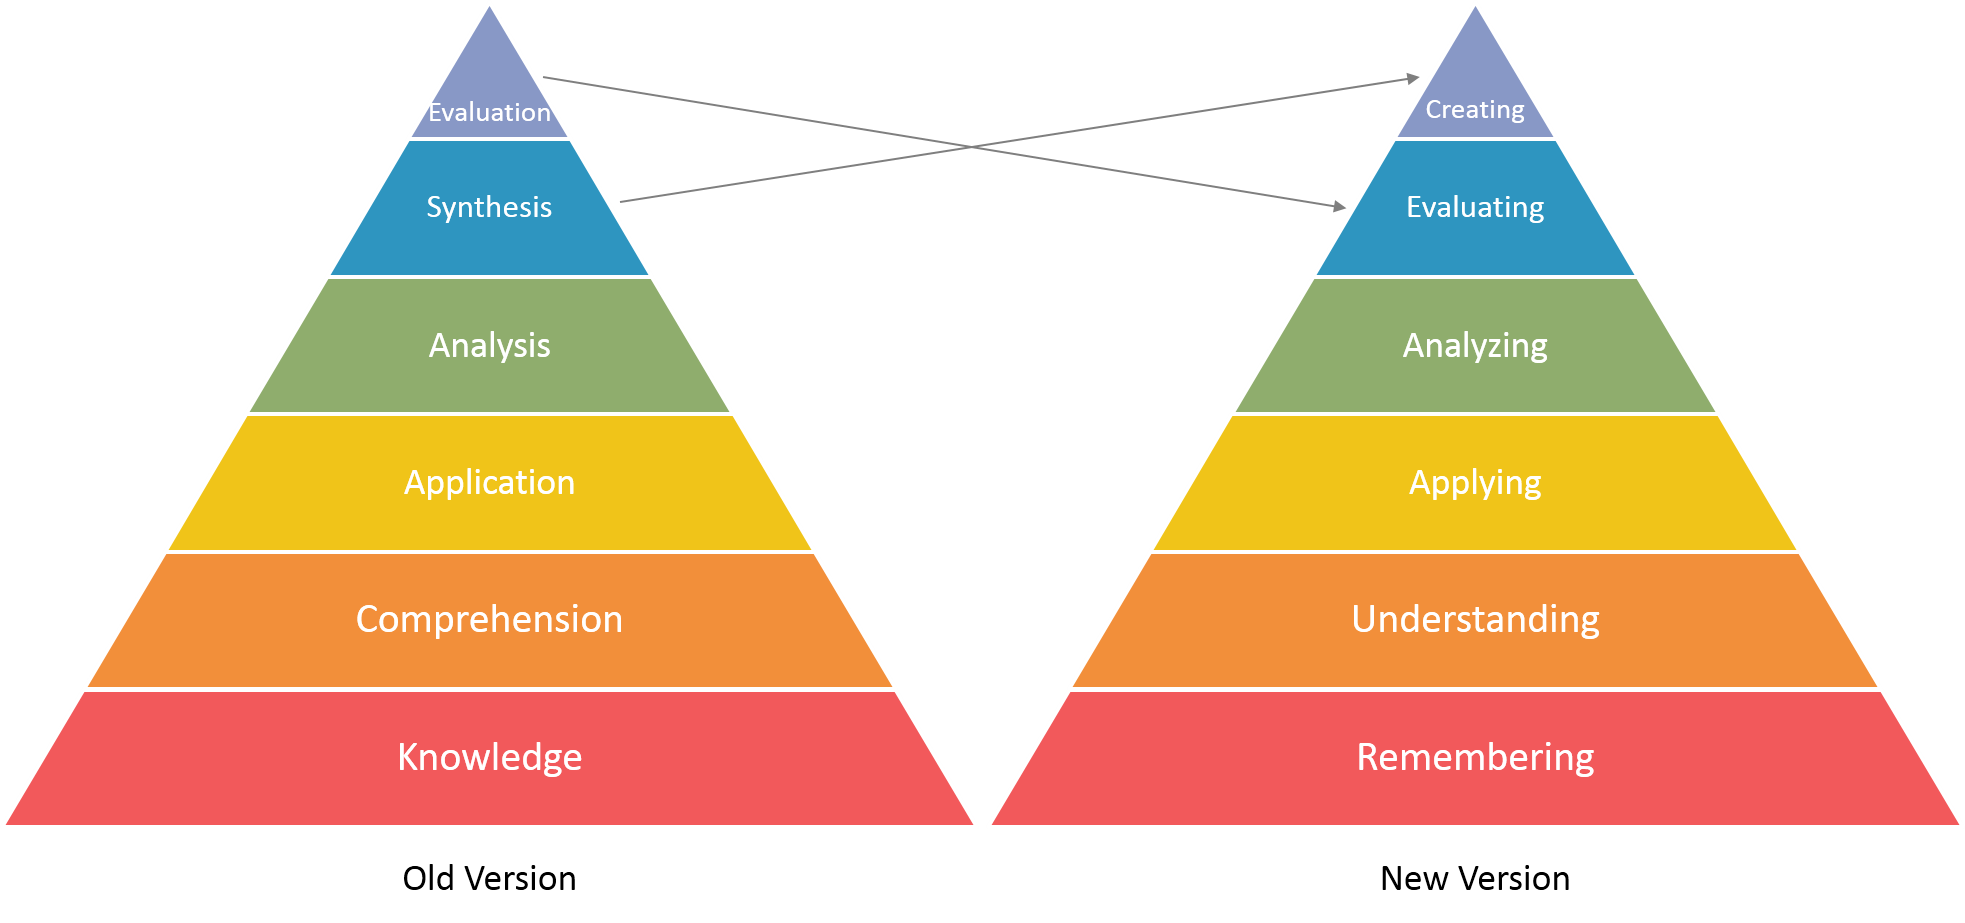 learnnovators_blooms_taxonomy